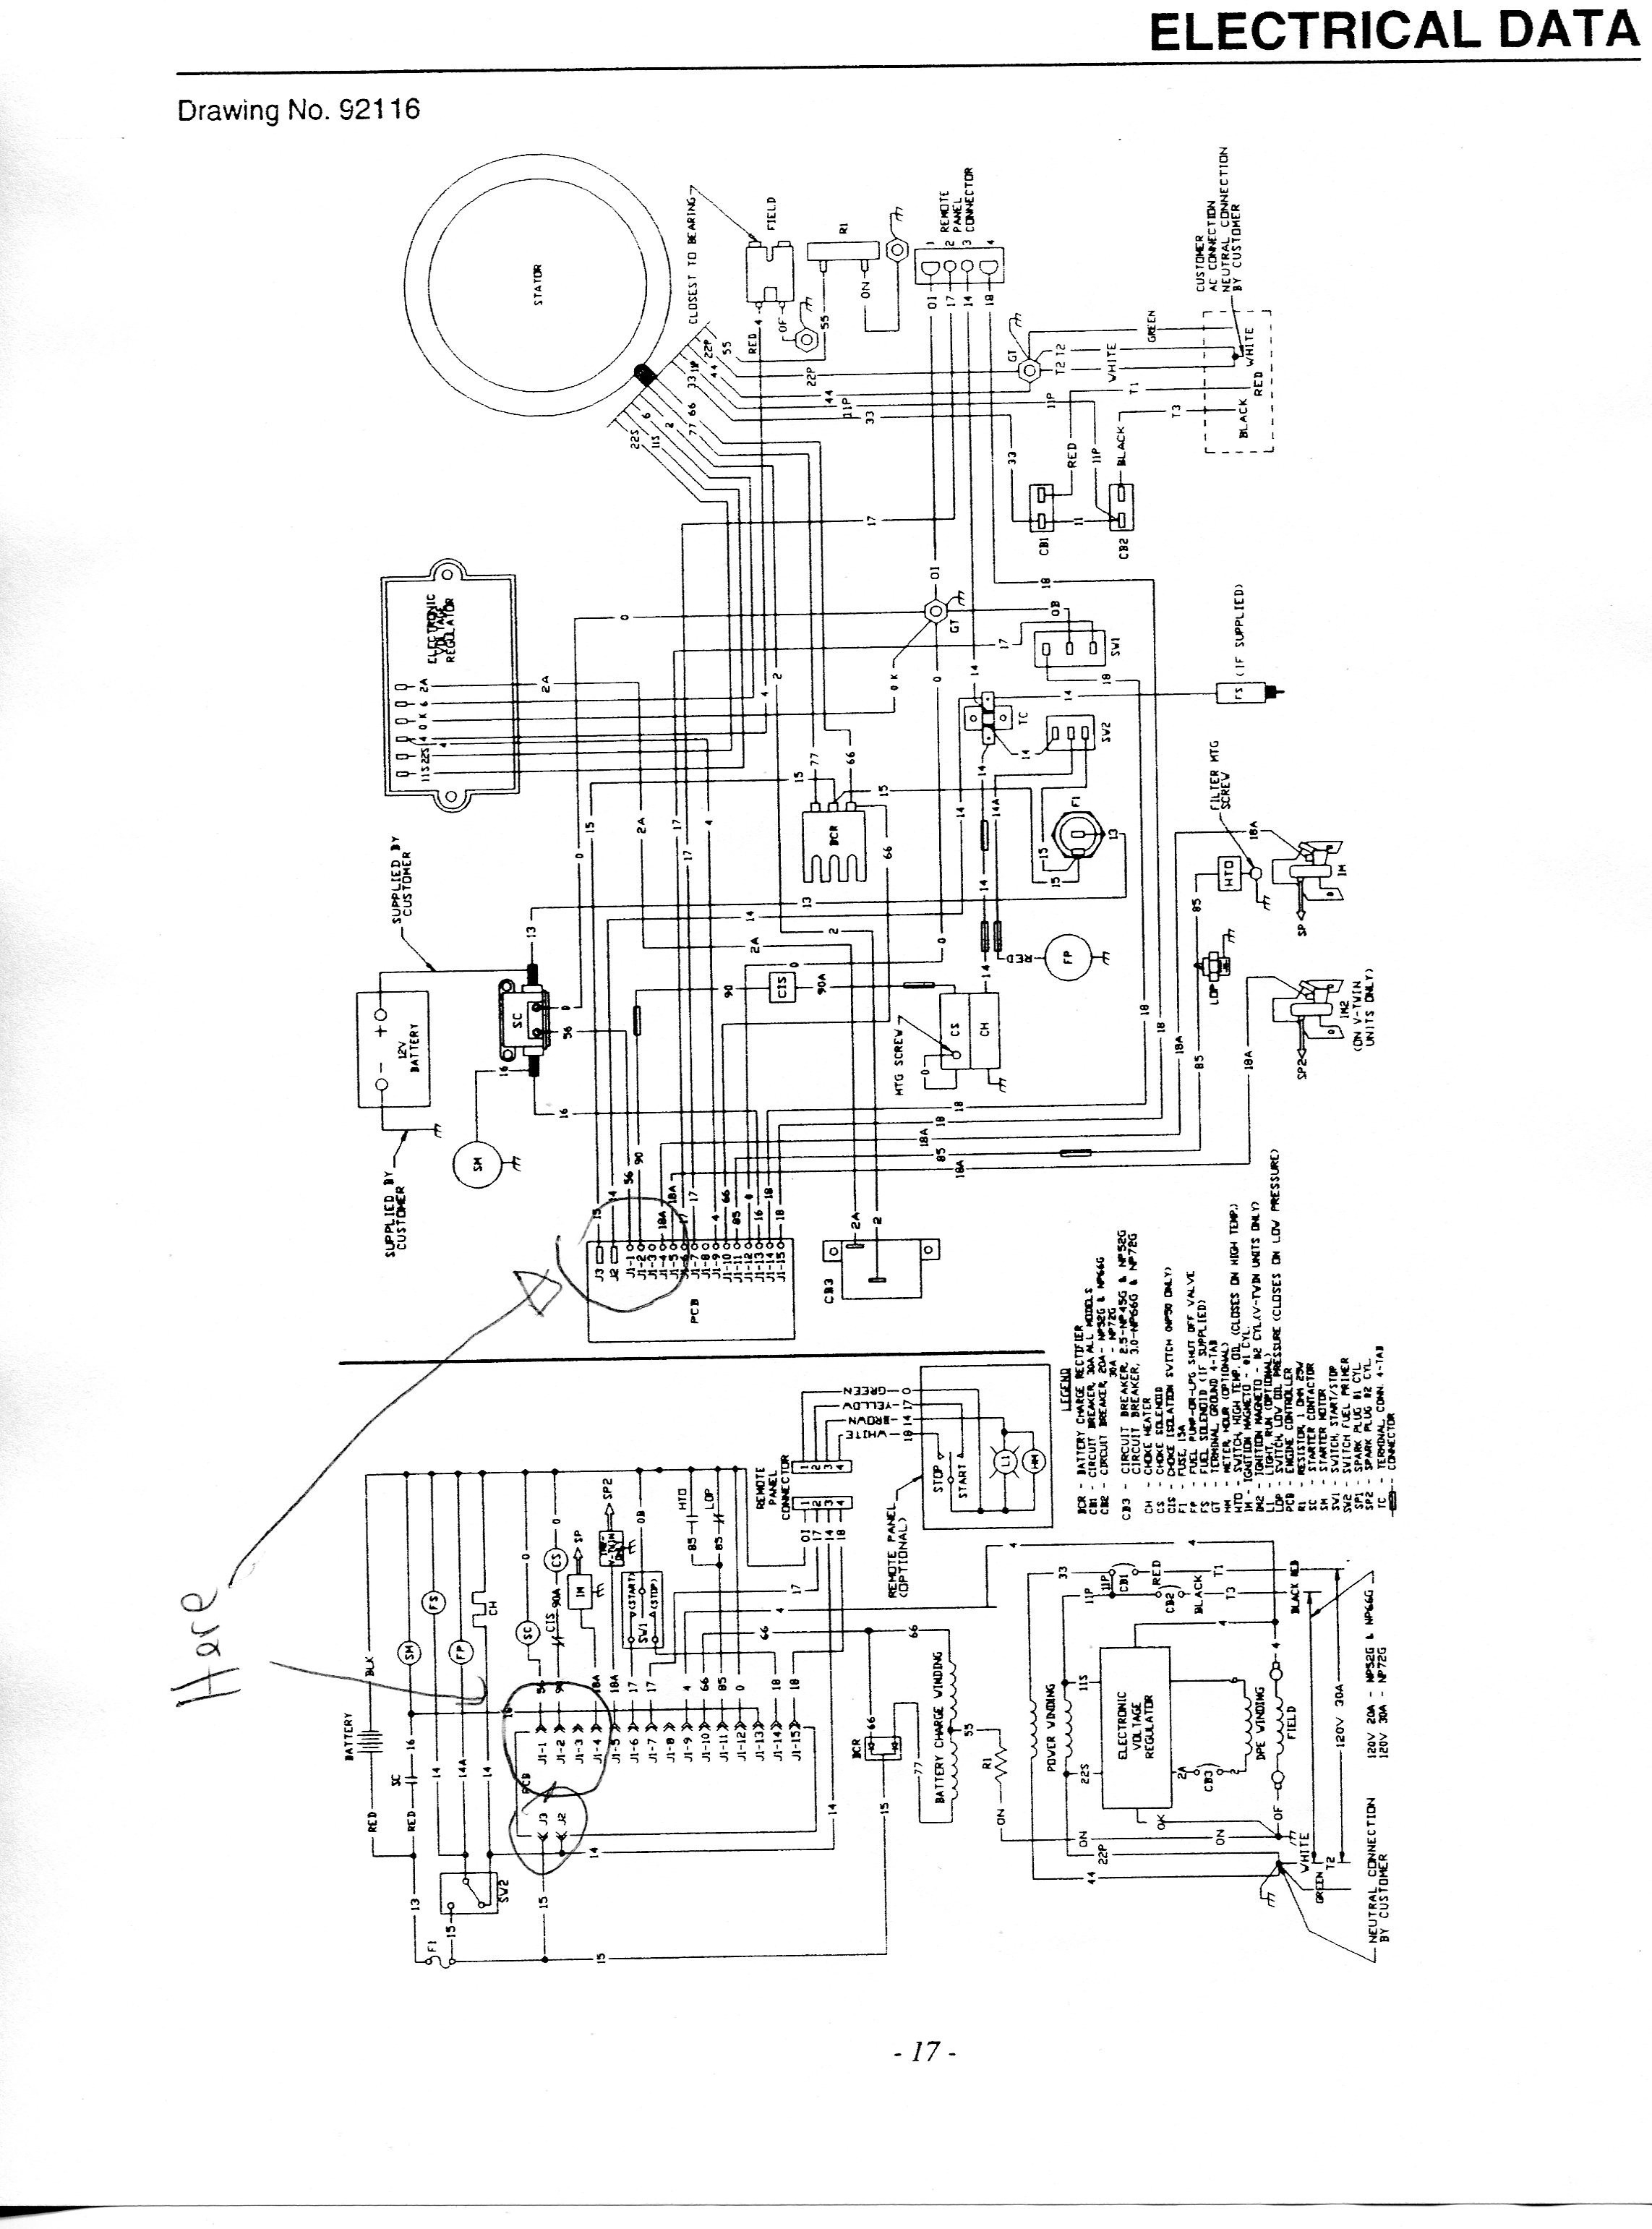 Get Generac 11kw Wiring Diagram Download